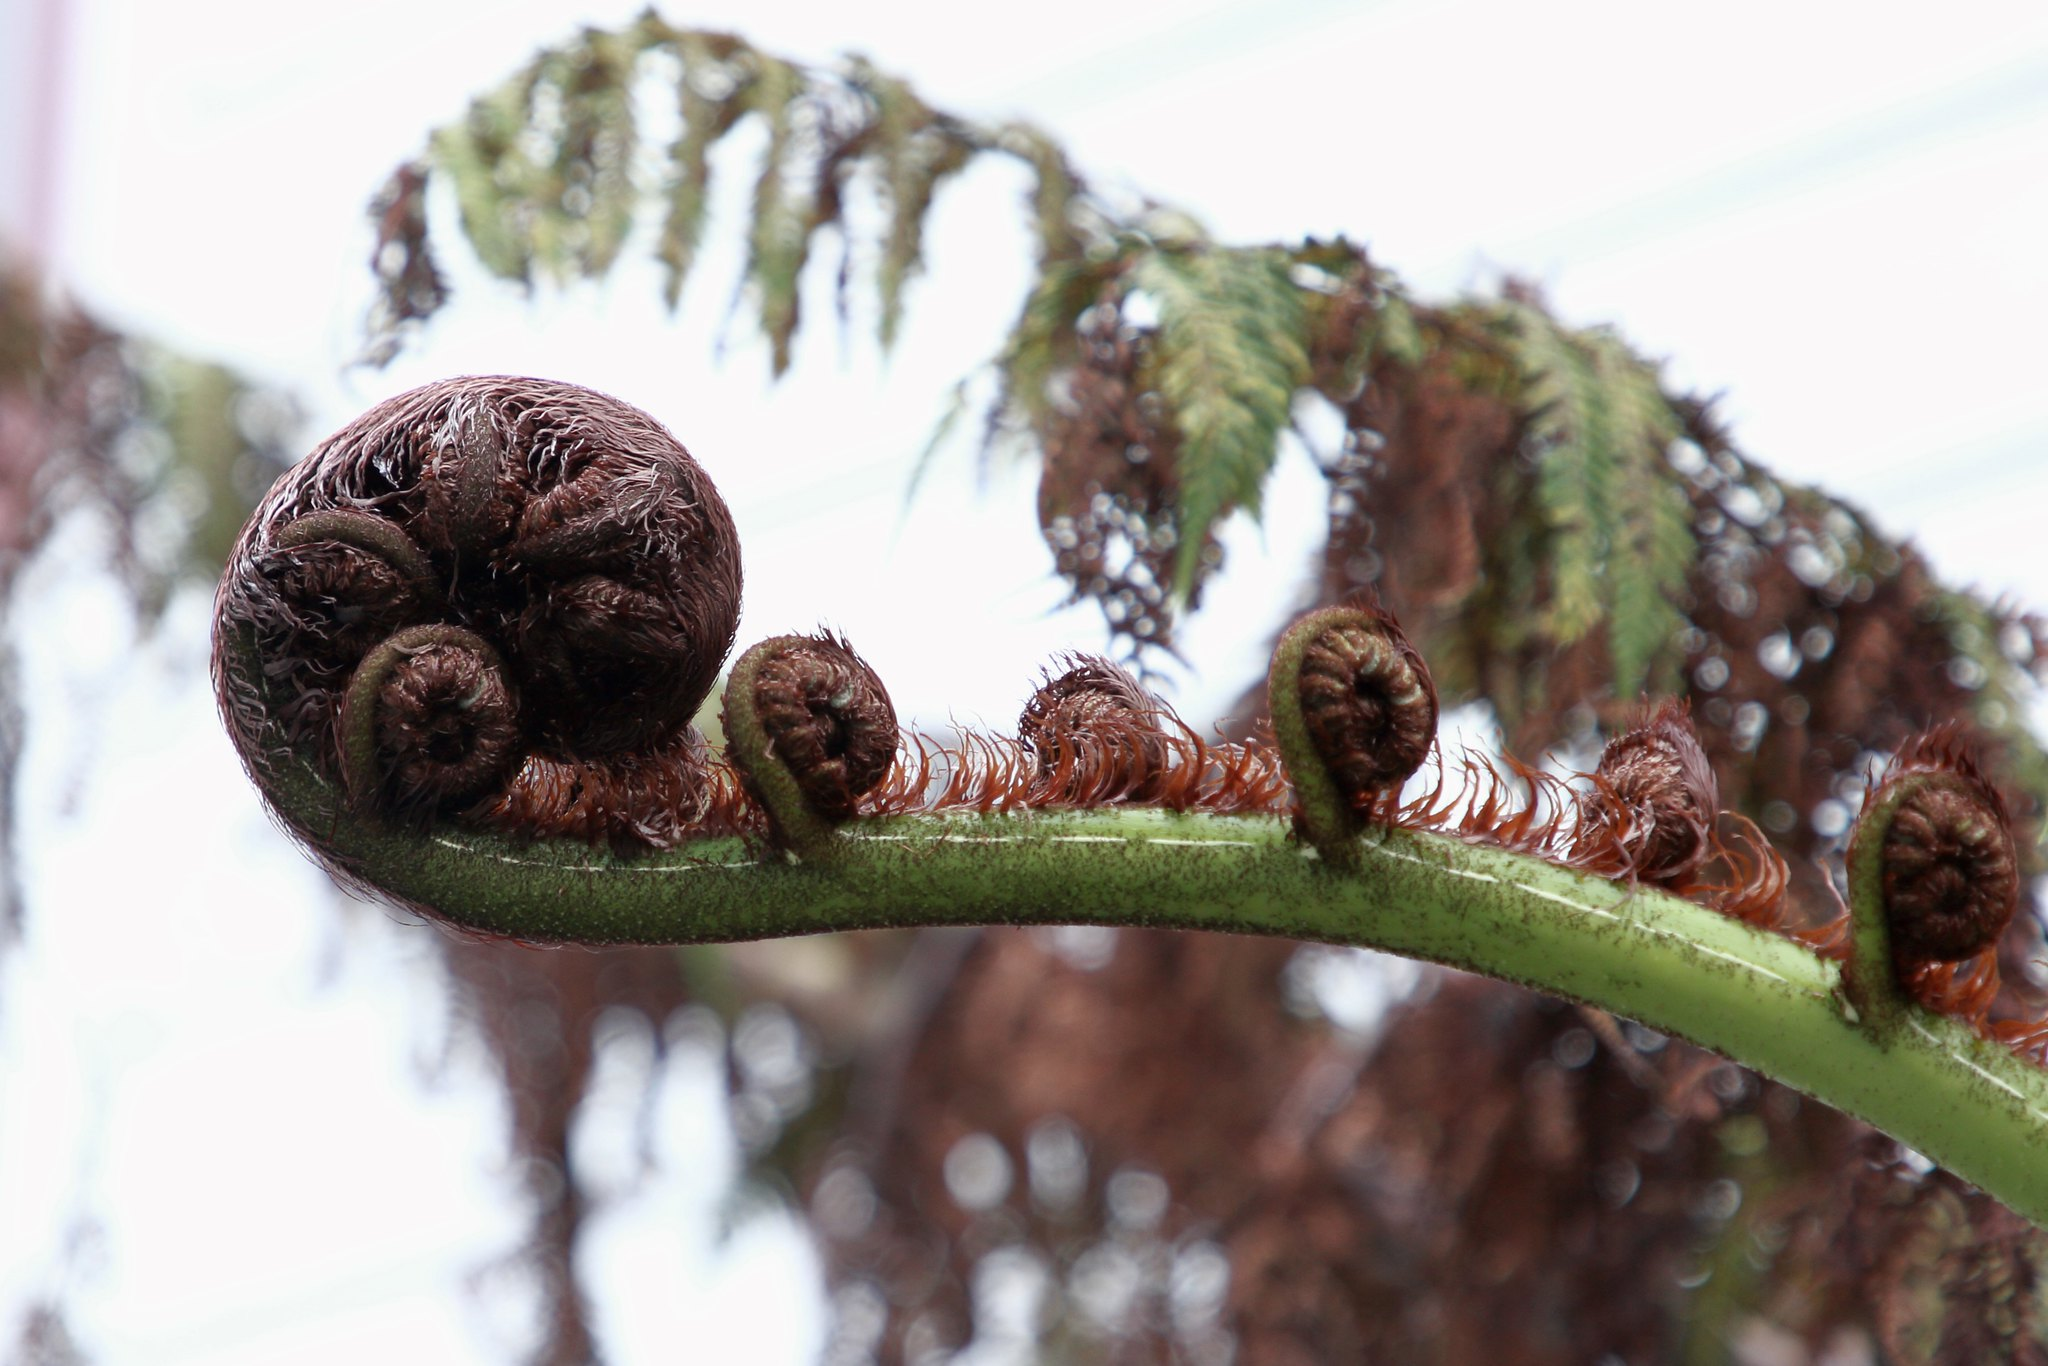 IMG_1743 EDIT (Fern frond, unfurls)